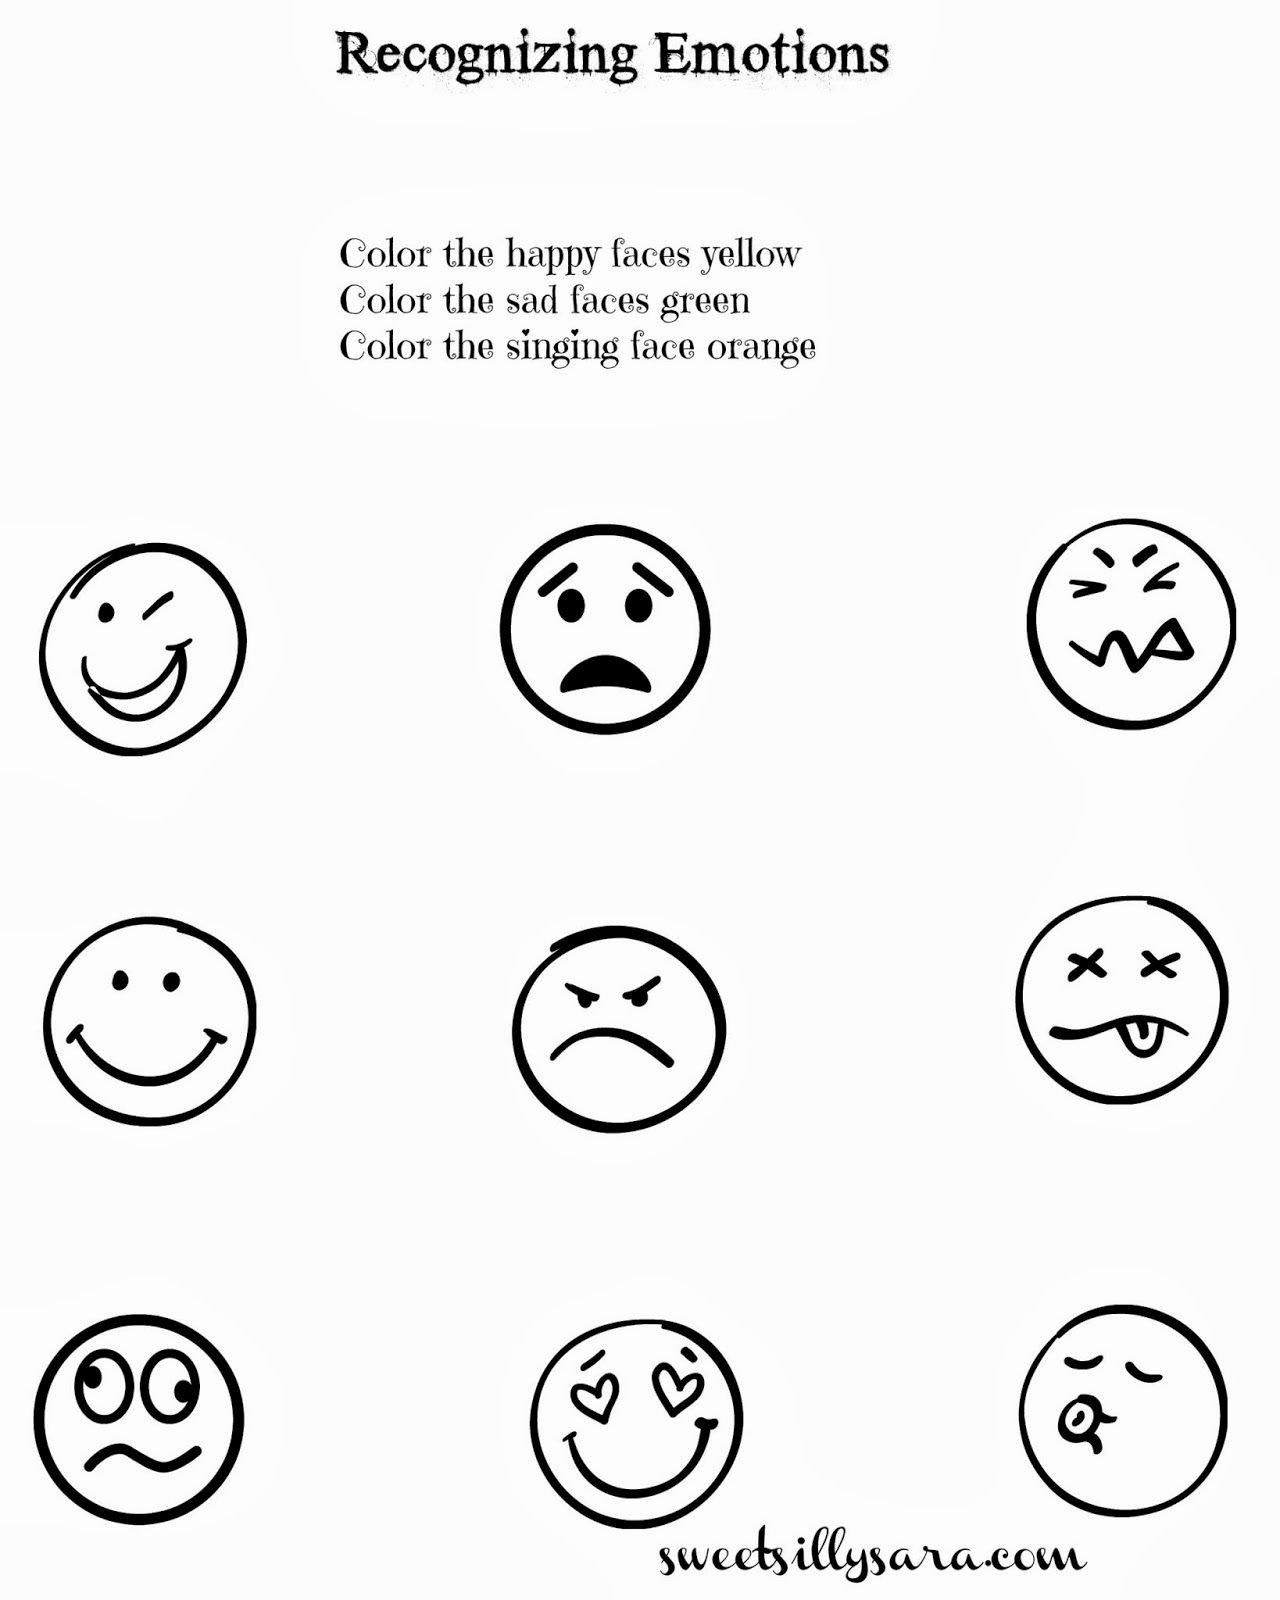 Emotion Worksheets for Preschoolers New Sweet Silly Sara Recognizing Emotions Worksheet